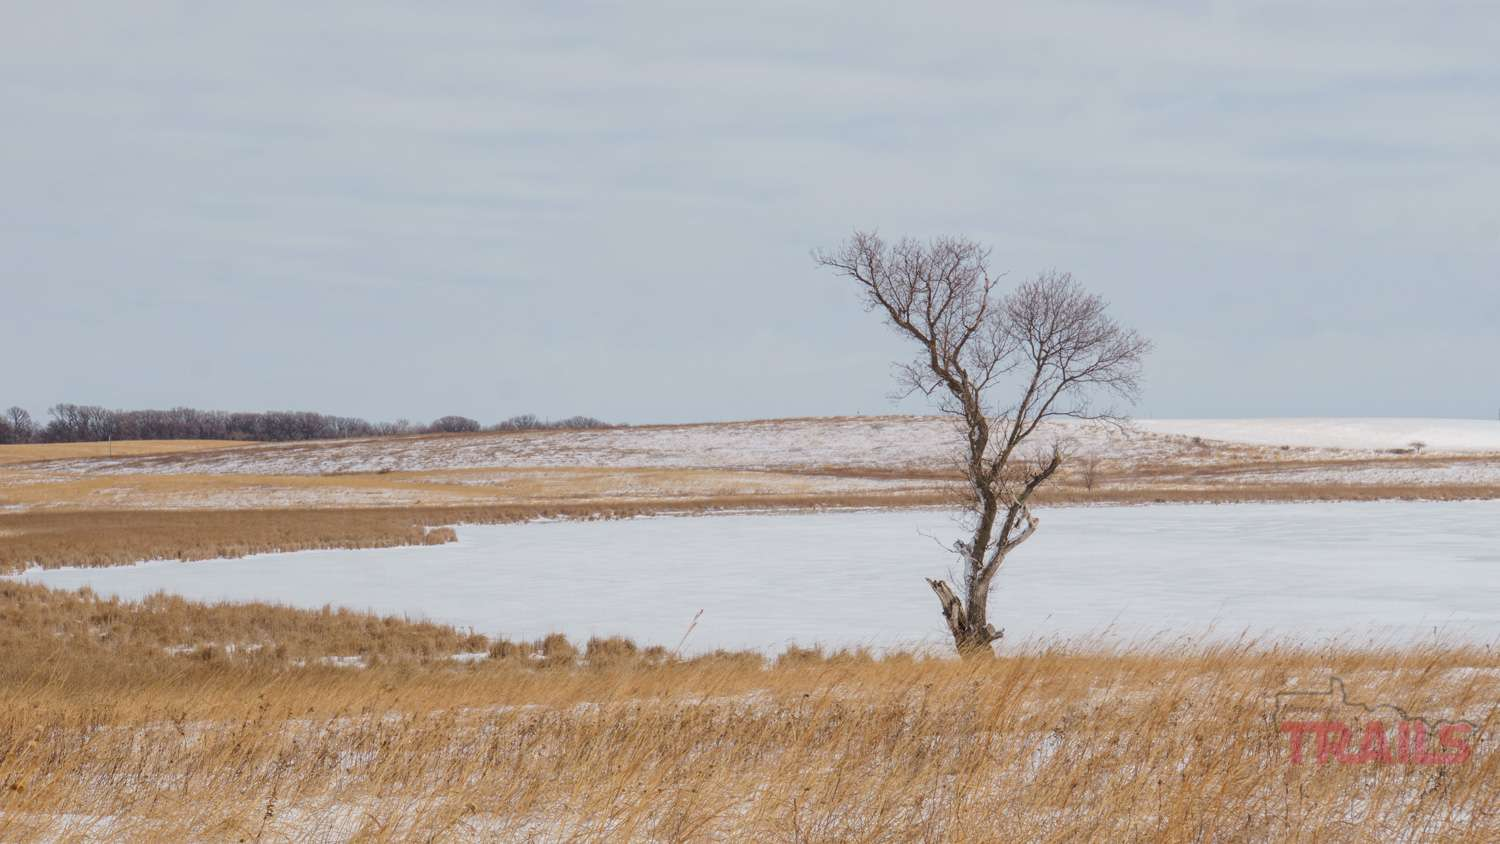 Winter view of a frozen lake surrounded by prairie grasses with a tree in the foreground